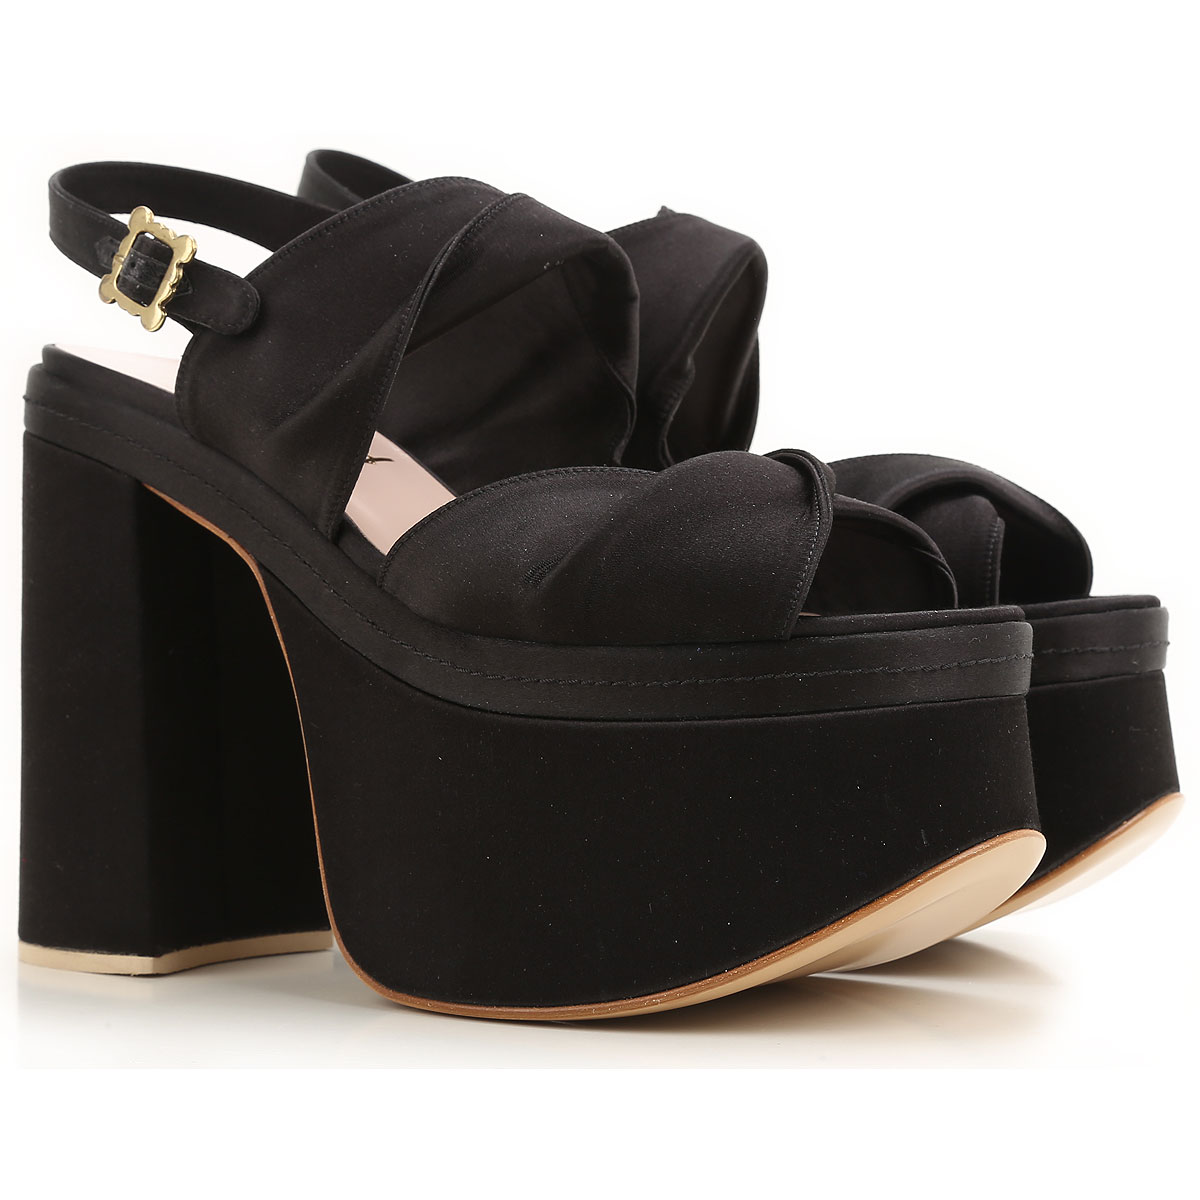 Vivienne Westwood Wedges for Women On Sale Black SE - GOOFASH